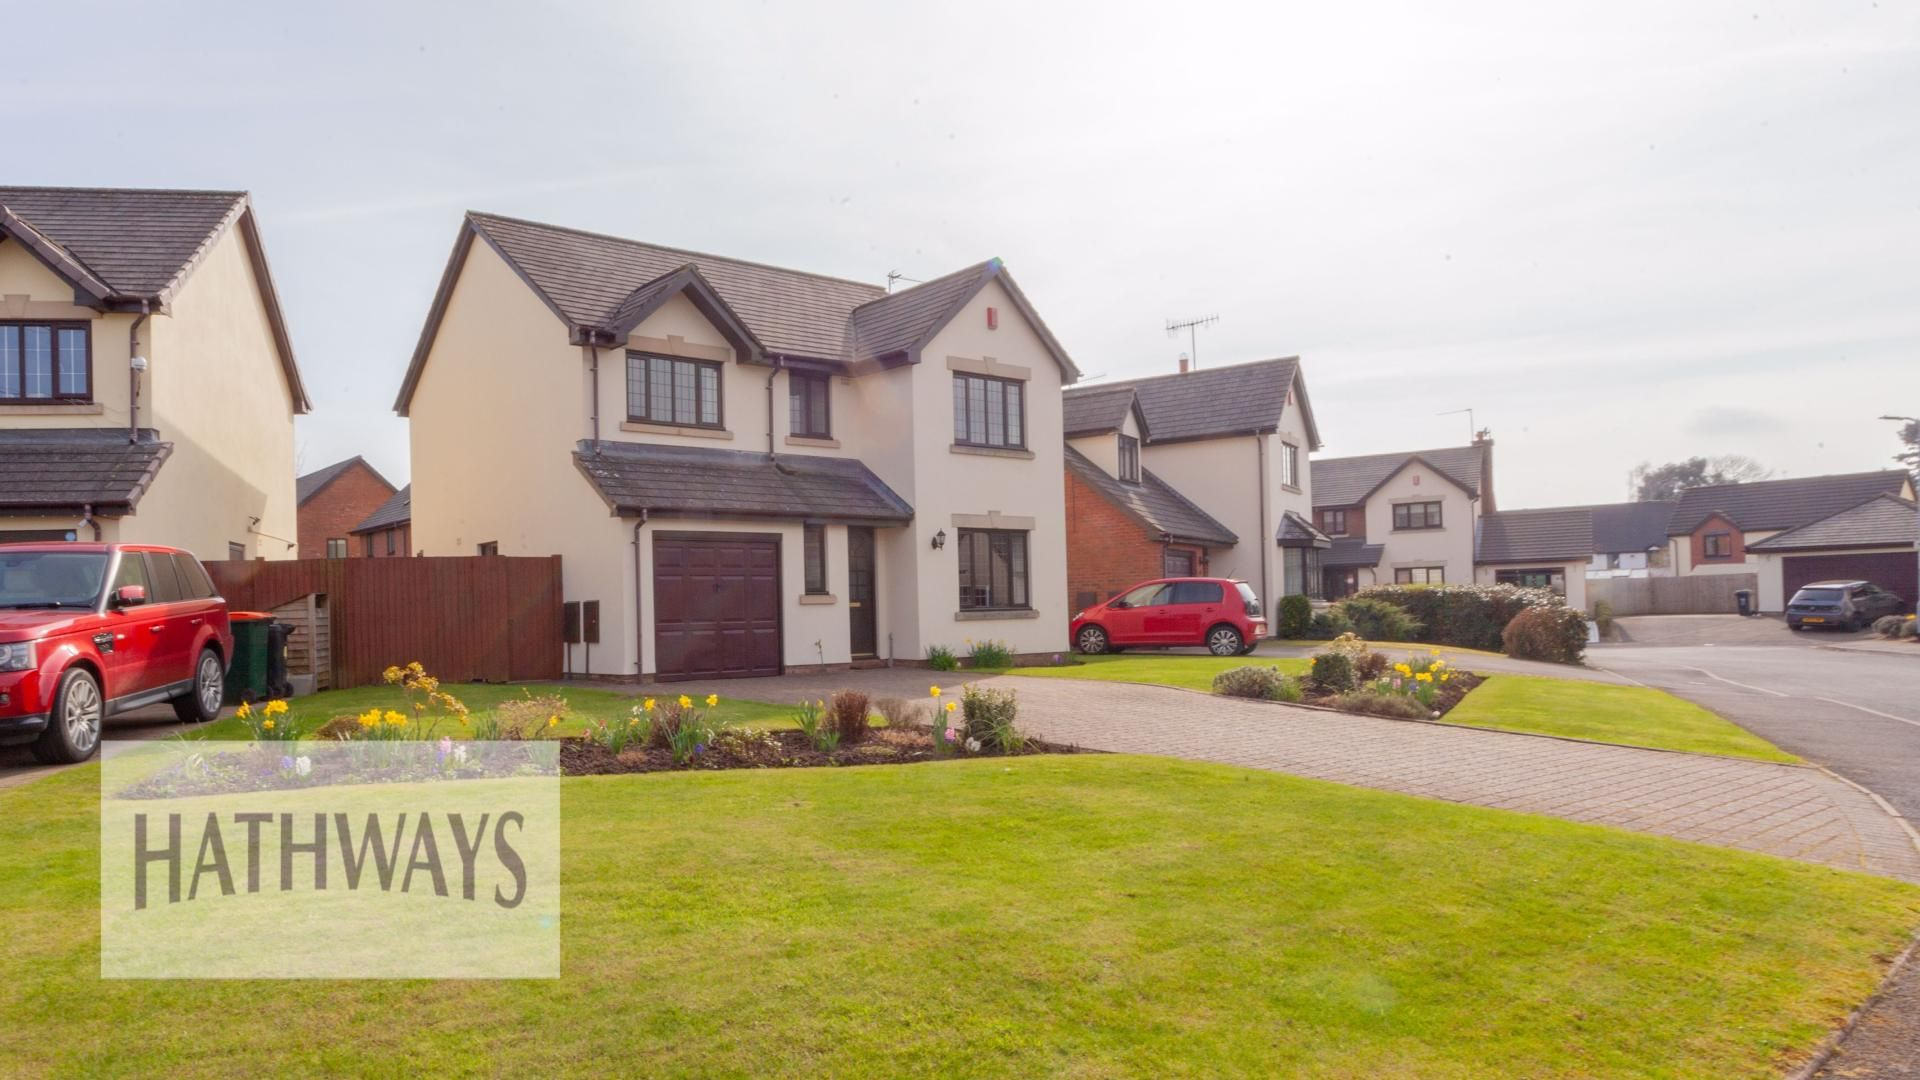 4 bed house for sale in East Lynne Gardens, NP18